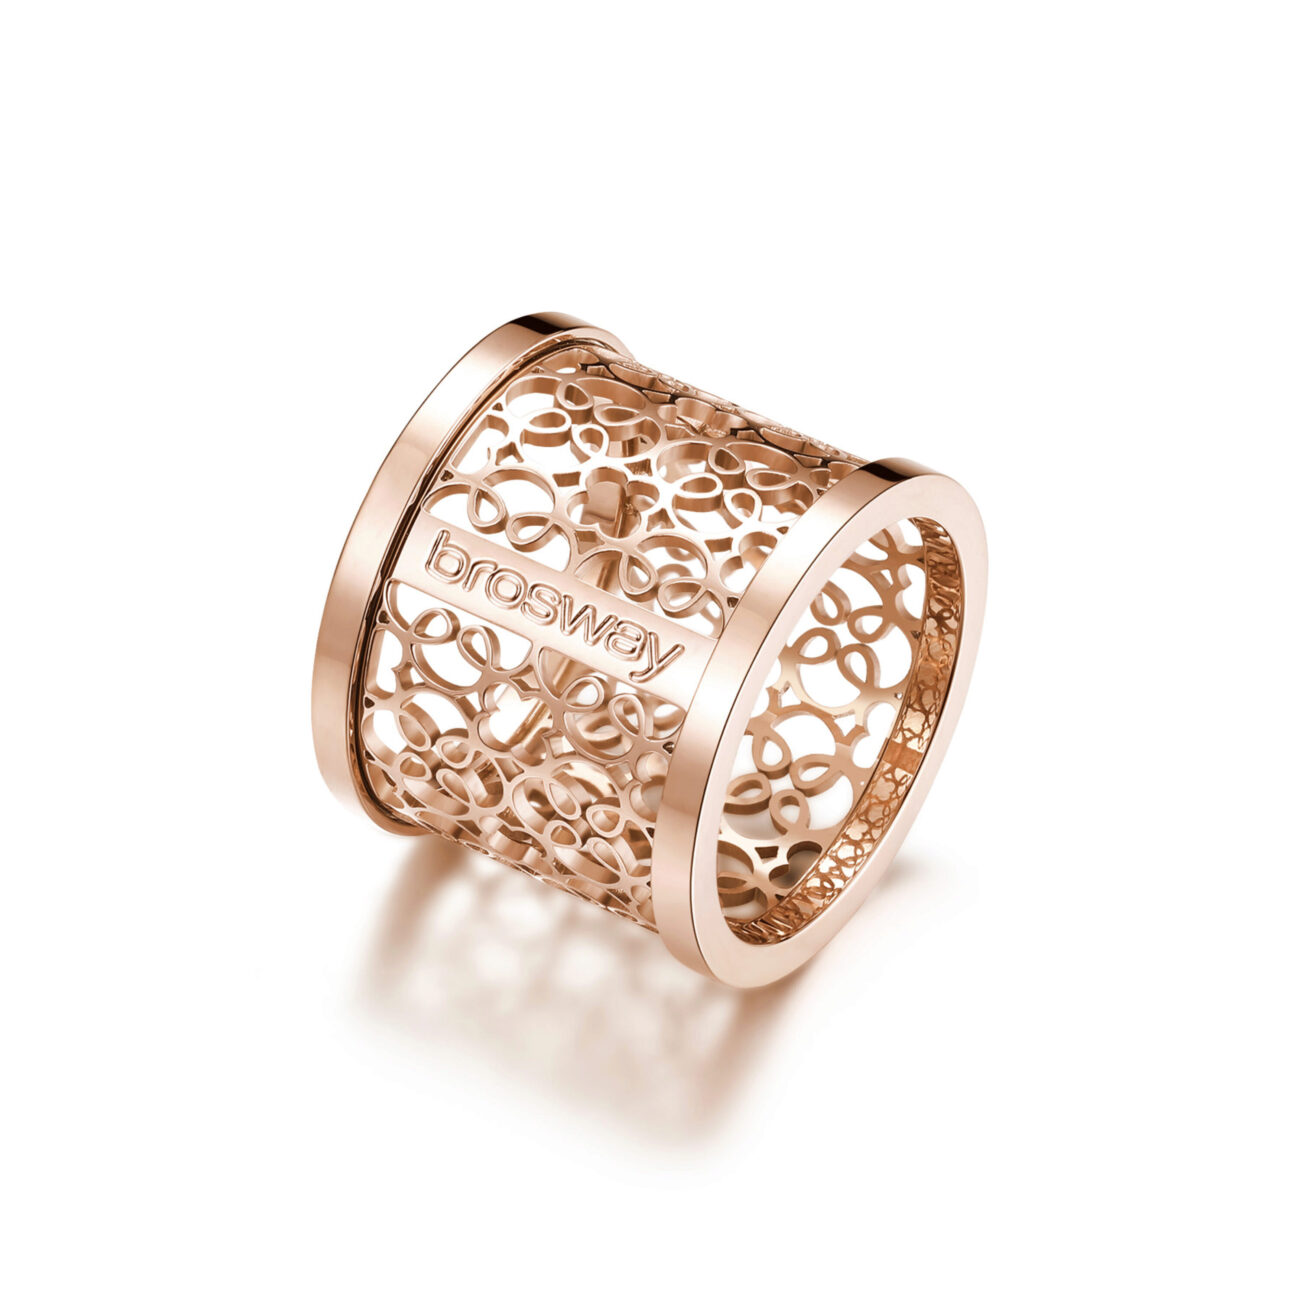 316L stainless steel ring and rose gold finishes.